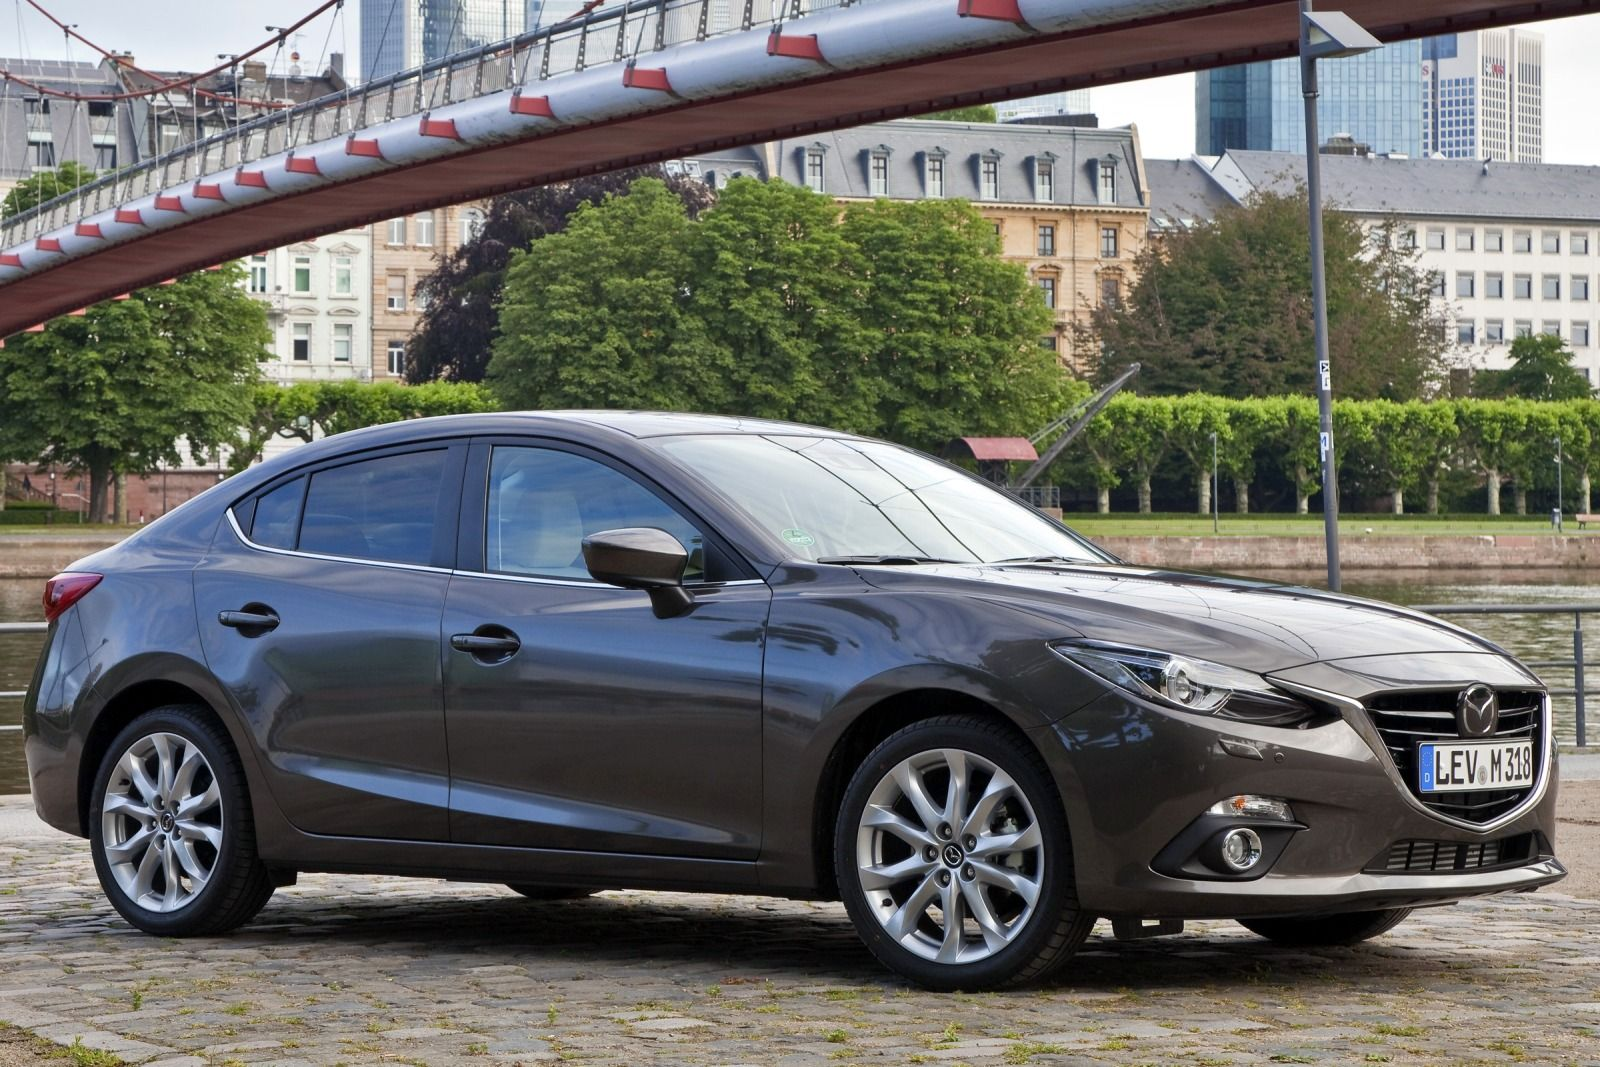 2015 mazda mazda 3 sedan pictures information and specs auto. Black Bedroom Furniture Sets. Home Design Ideas